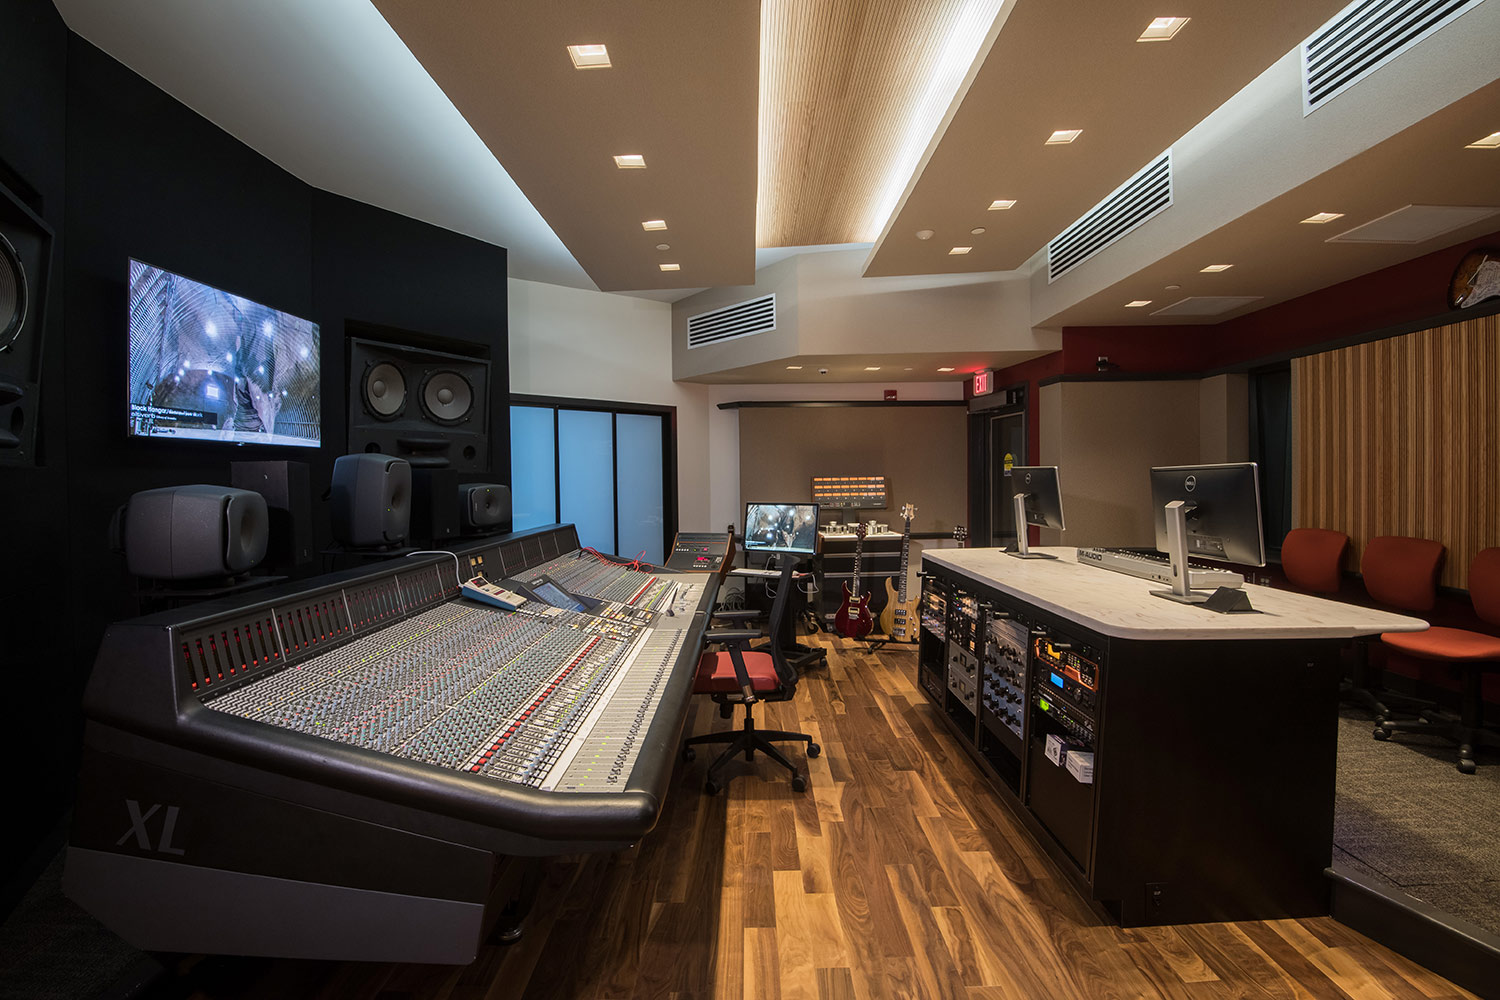 Montgomery County Community College in Blue Bell, PA brand-new Recording Studio for their Digital Music Technology course. Designed by WSDG. Architectural acoustics and media systems engineering. Control Room Side View